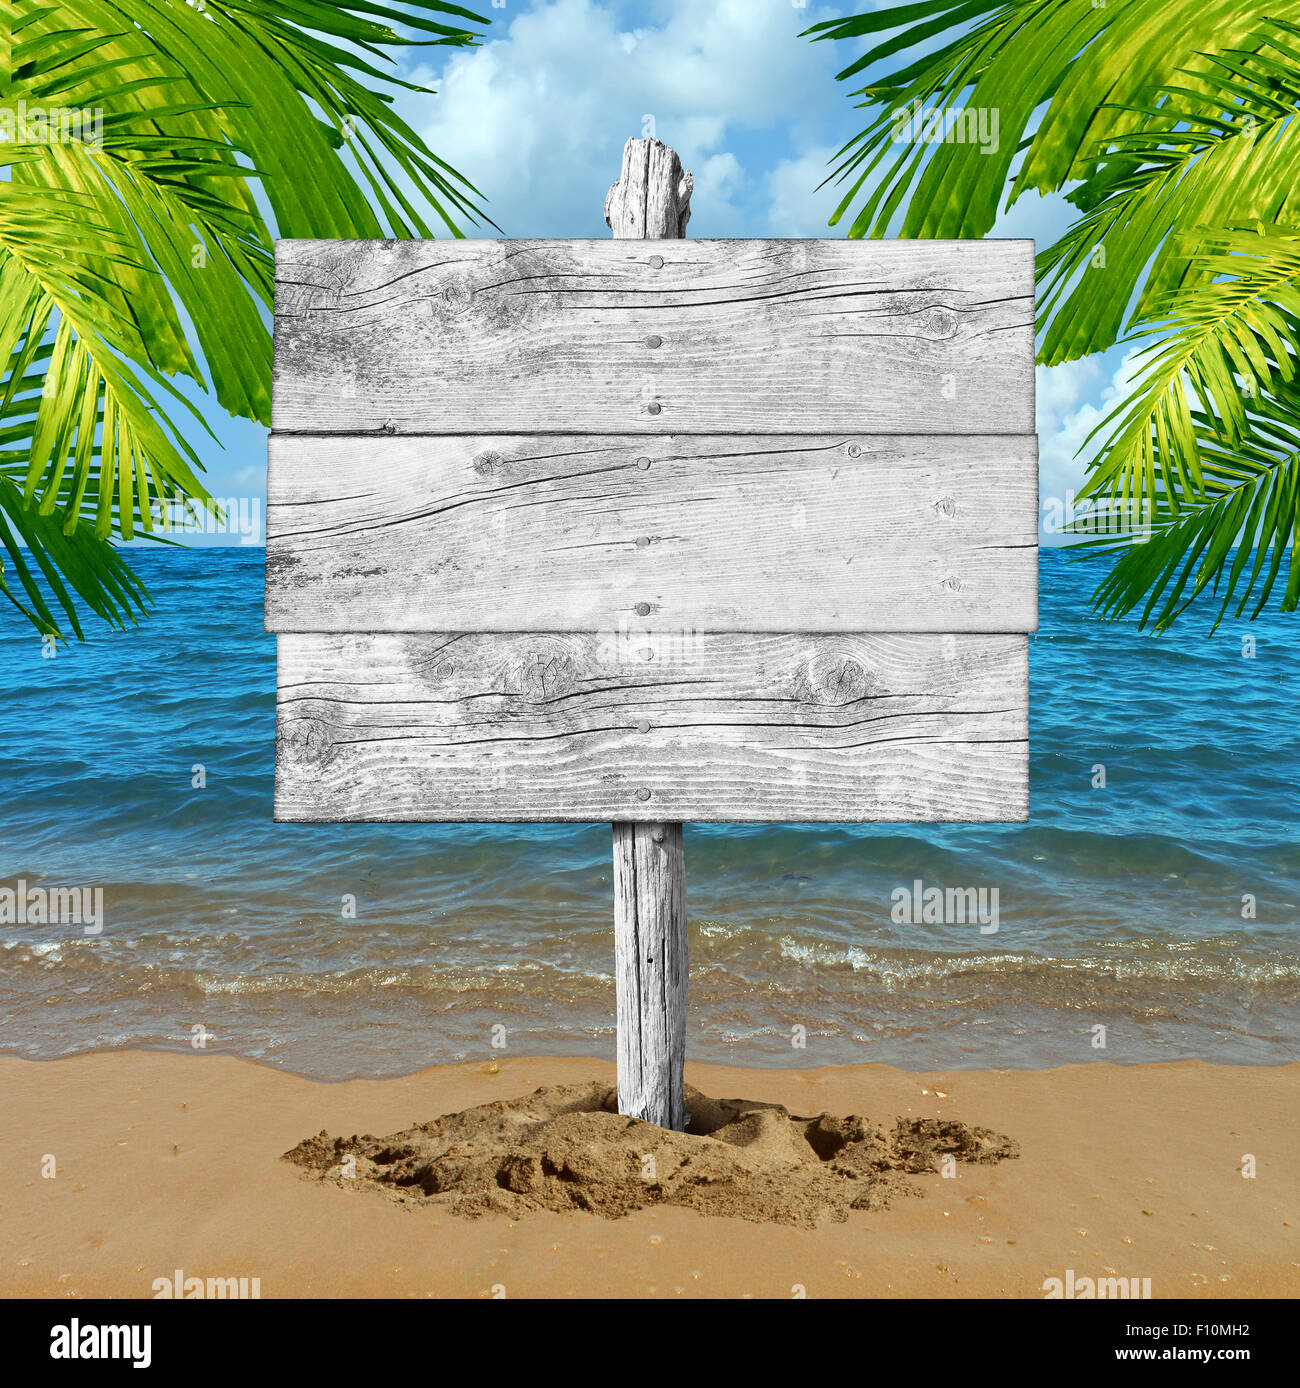 Beach wood sign and tropical vacation blank billboard background as